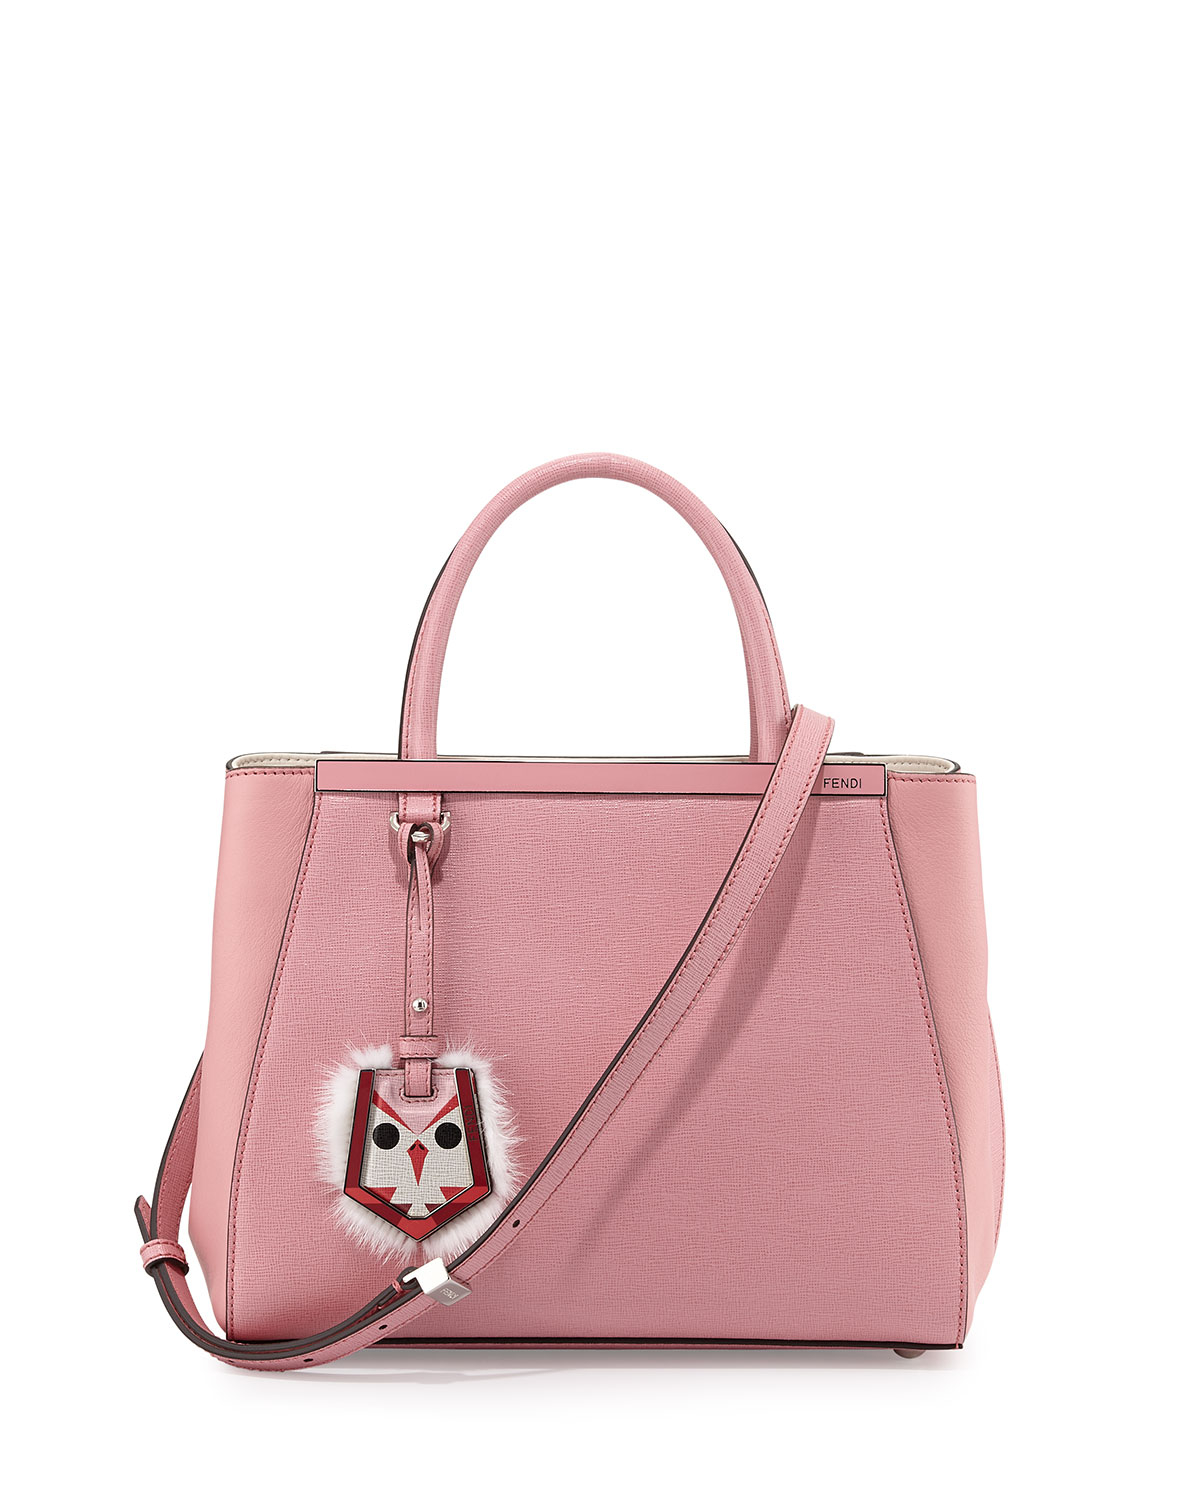 7978059a99c Fendi 2Jours Petit Monster-Charm Shopping Tote Bag in Pink - Lyst